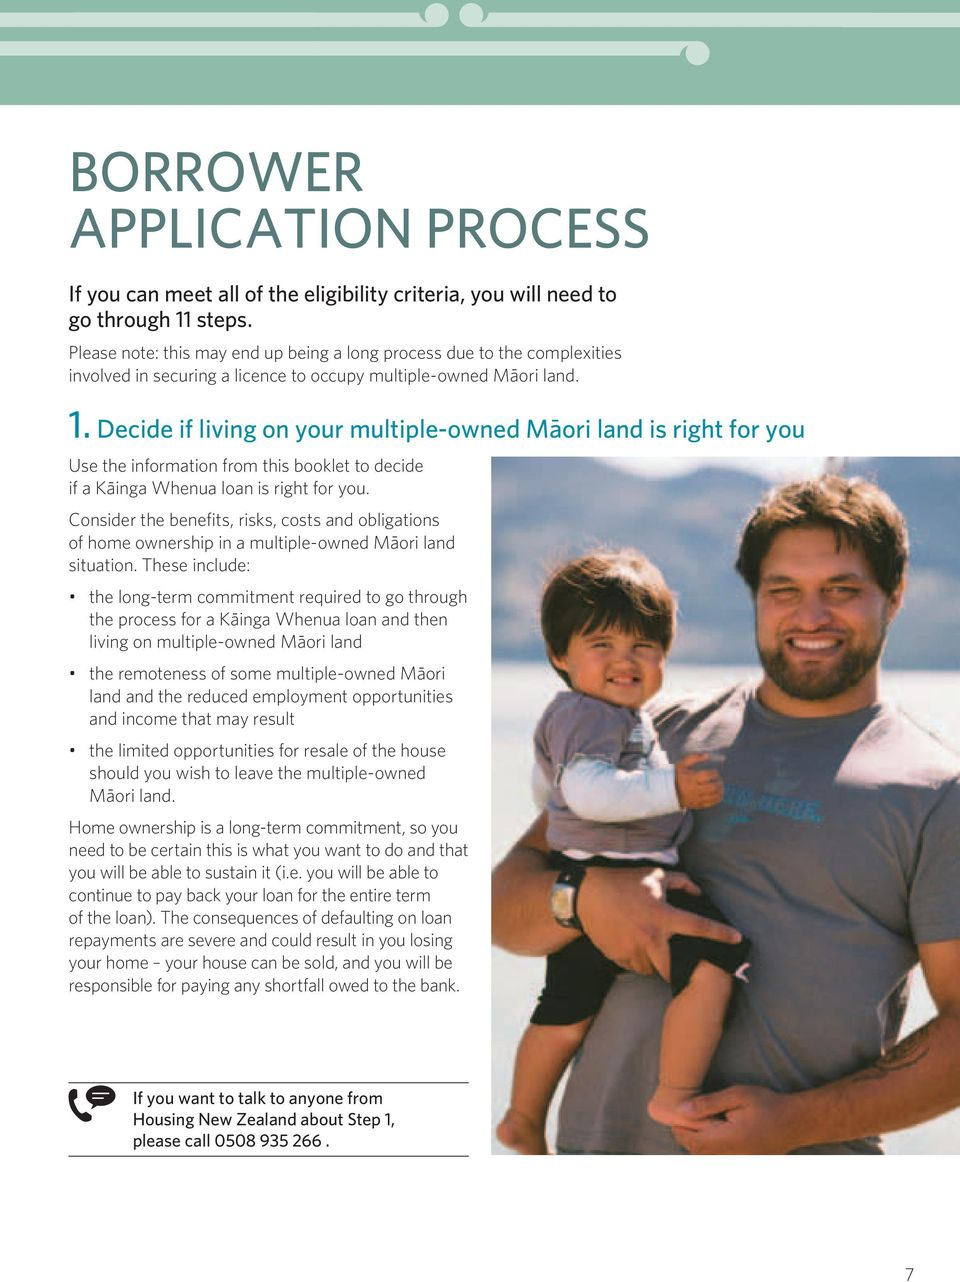 decide if living on your multiple-owned Māori land is right for you Use the information from this booklet to decide if a Kāinga Whenua loan is right for you.